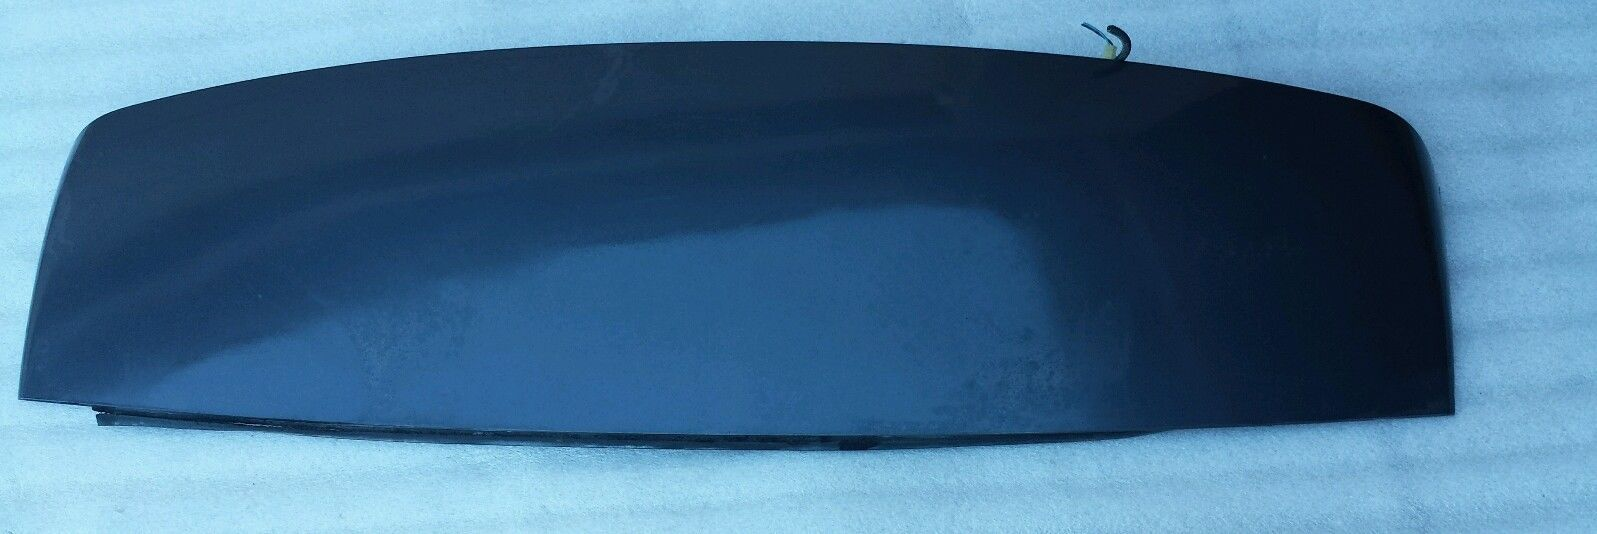 07 09 Chevy Equinox Torrent Tailgate Rear and 50 similar items